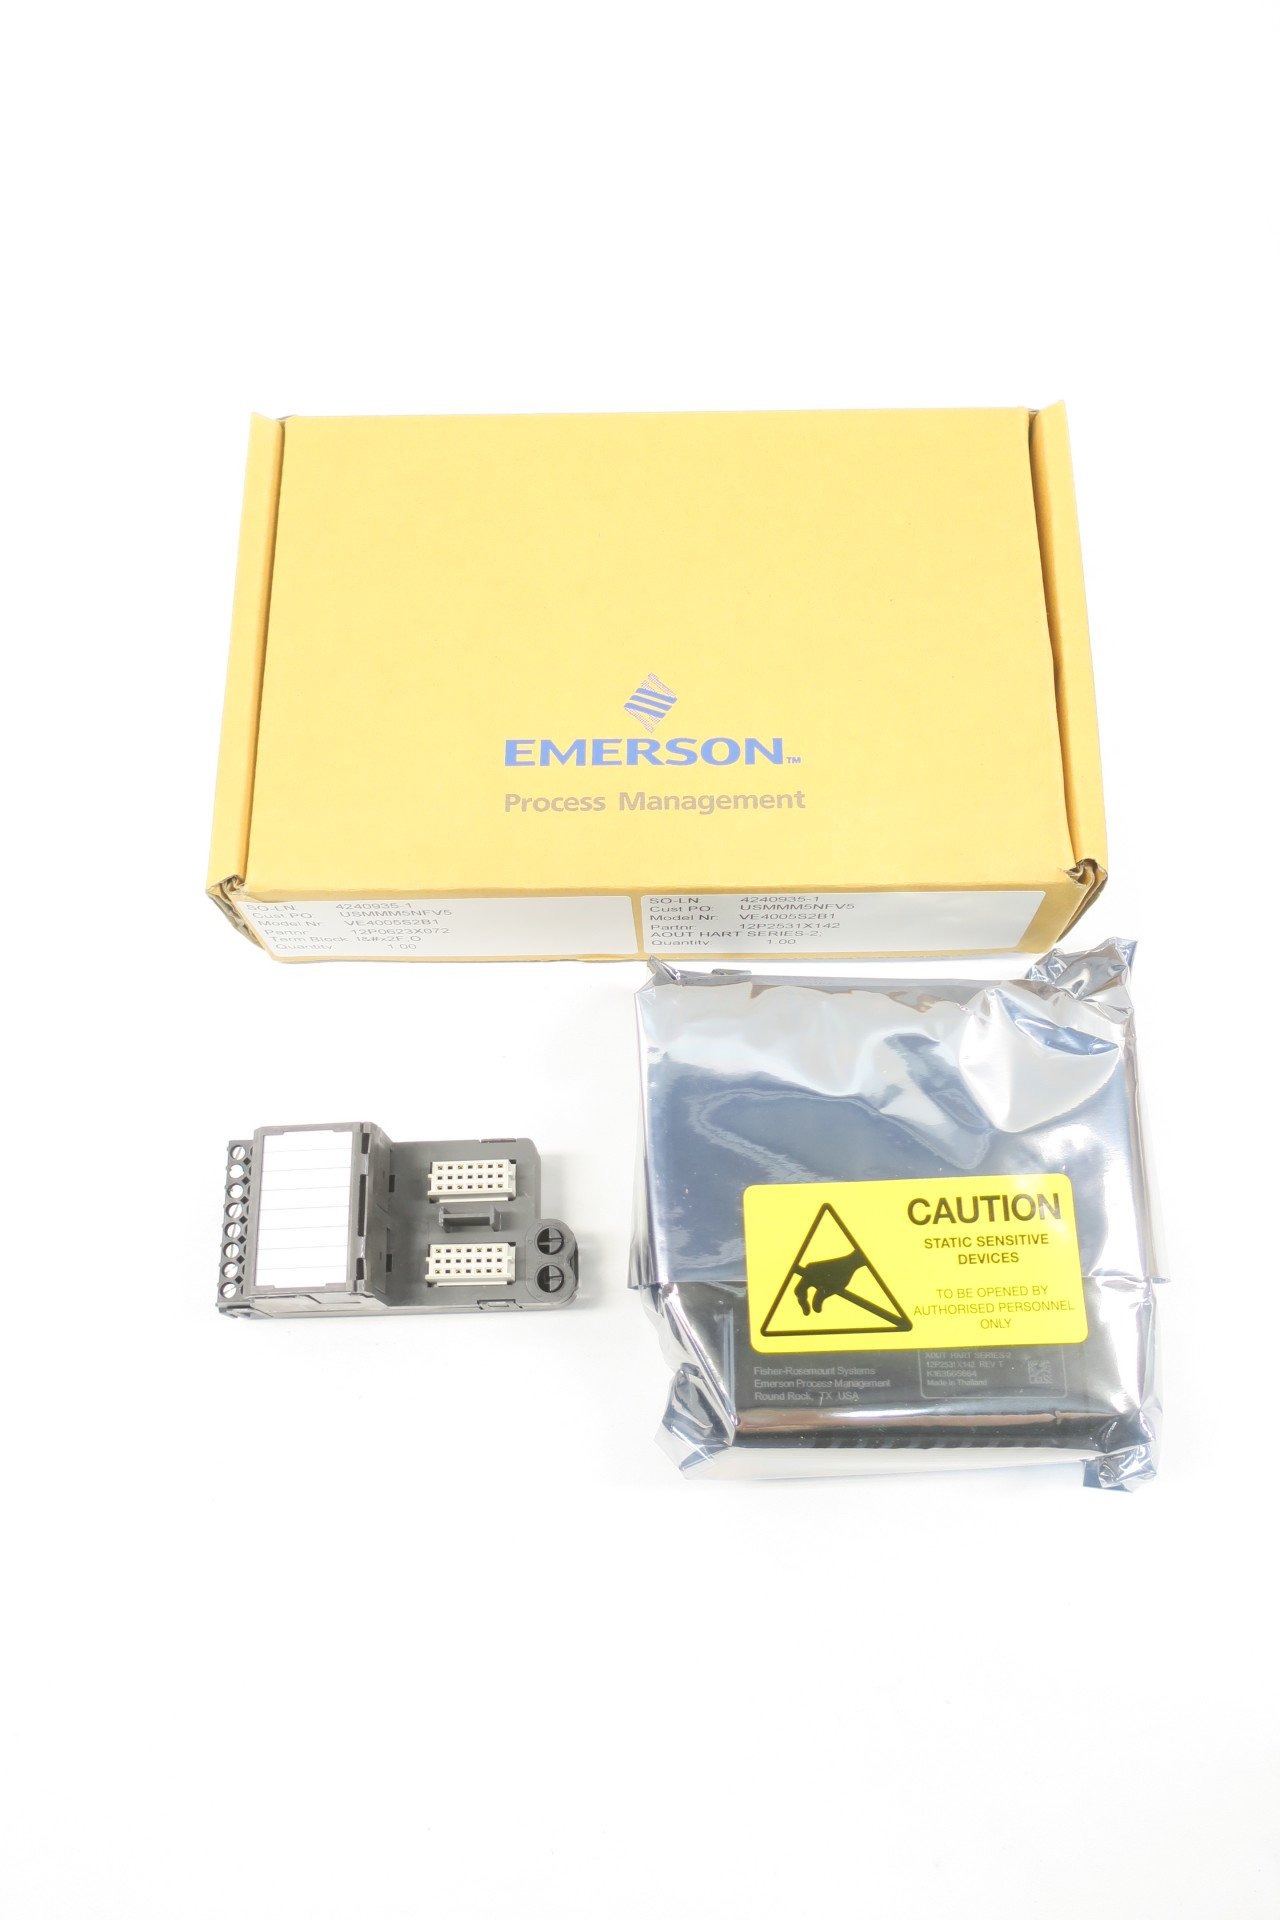 EMERSON KJ3221X1-BA1 HART ANALOG REV T OUTPUT MODULE D587621 by Emerson (Image #1)